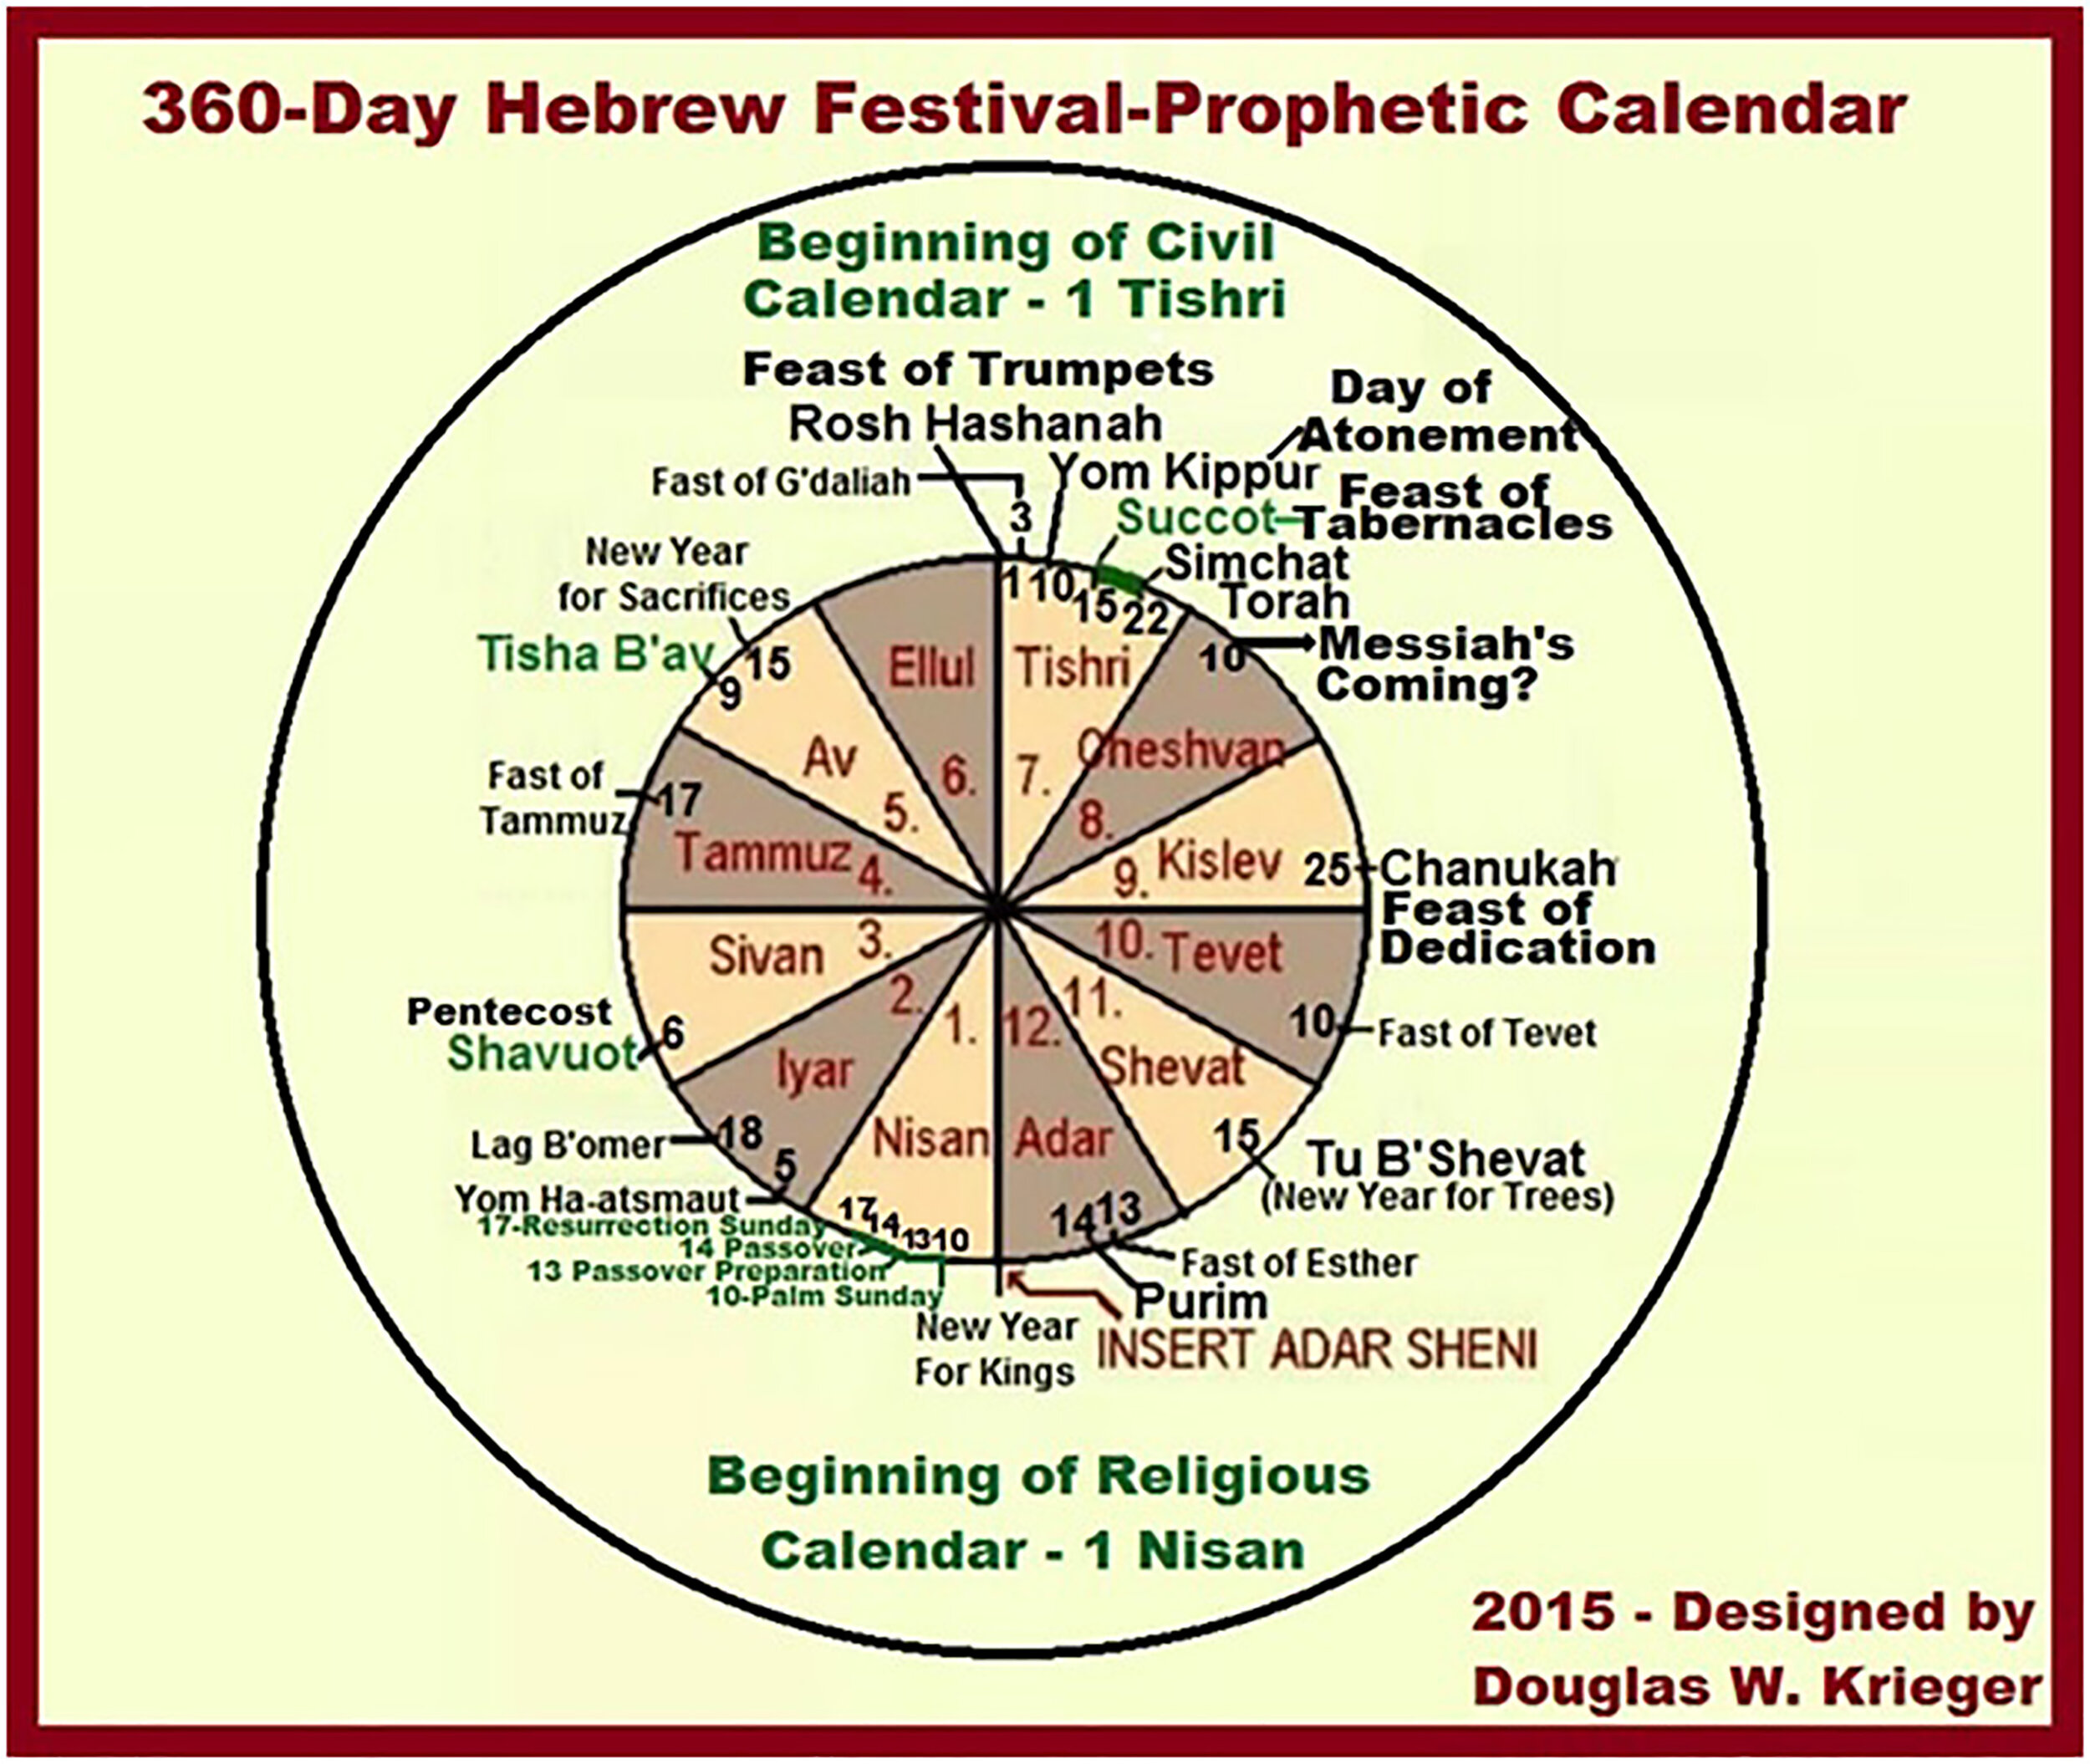 Expanded Hebrew Festival Calendar with Christian Dates of Significance